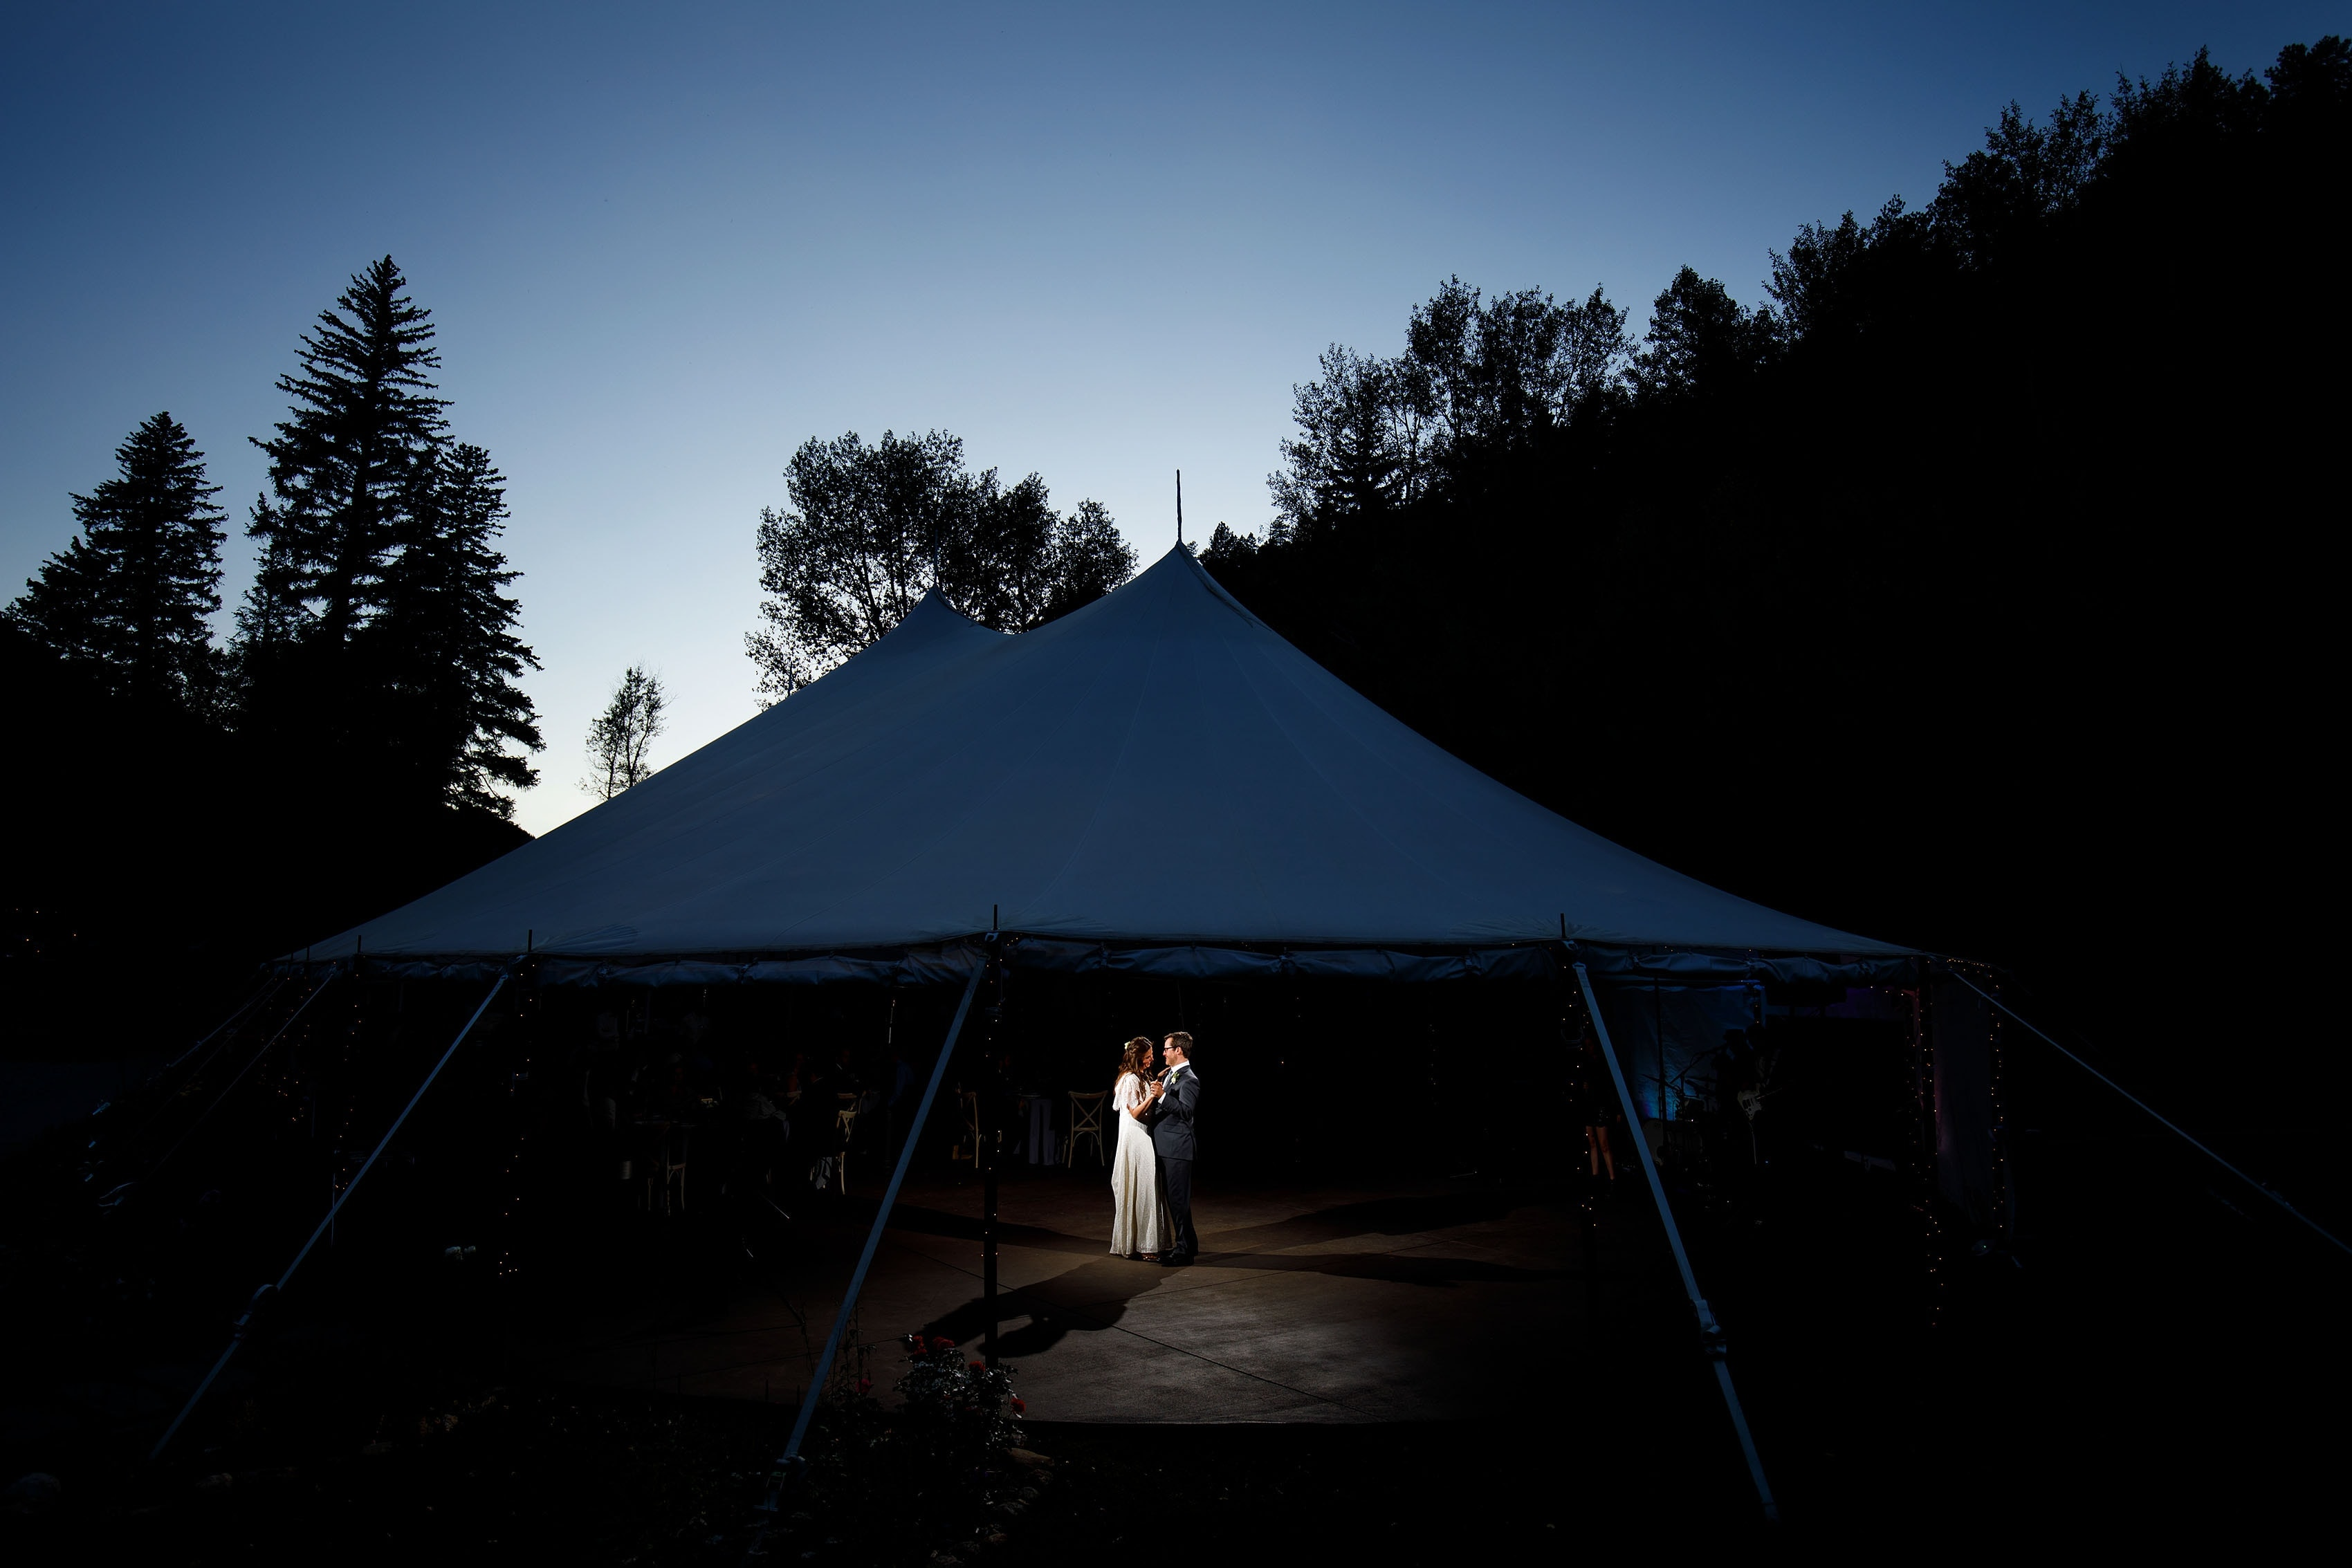 Kate and Brian share a first dance under the tent during twilight at Blackstone Rivers Ranch